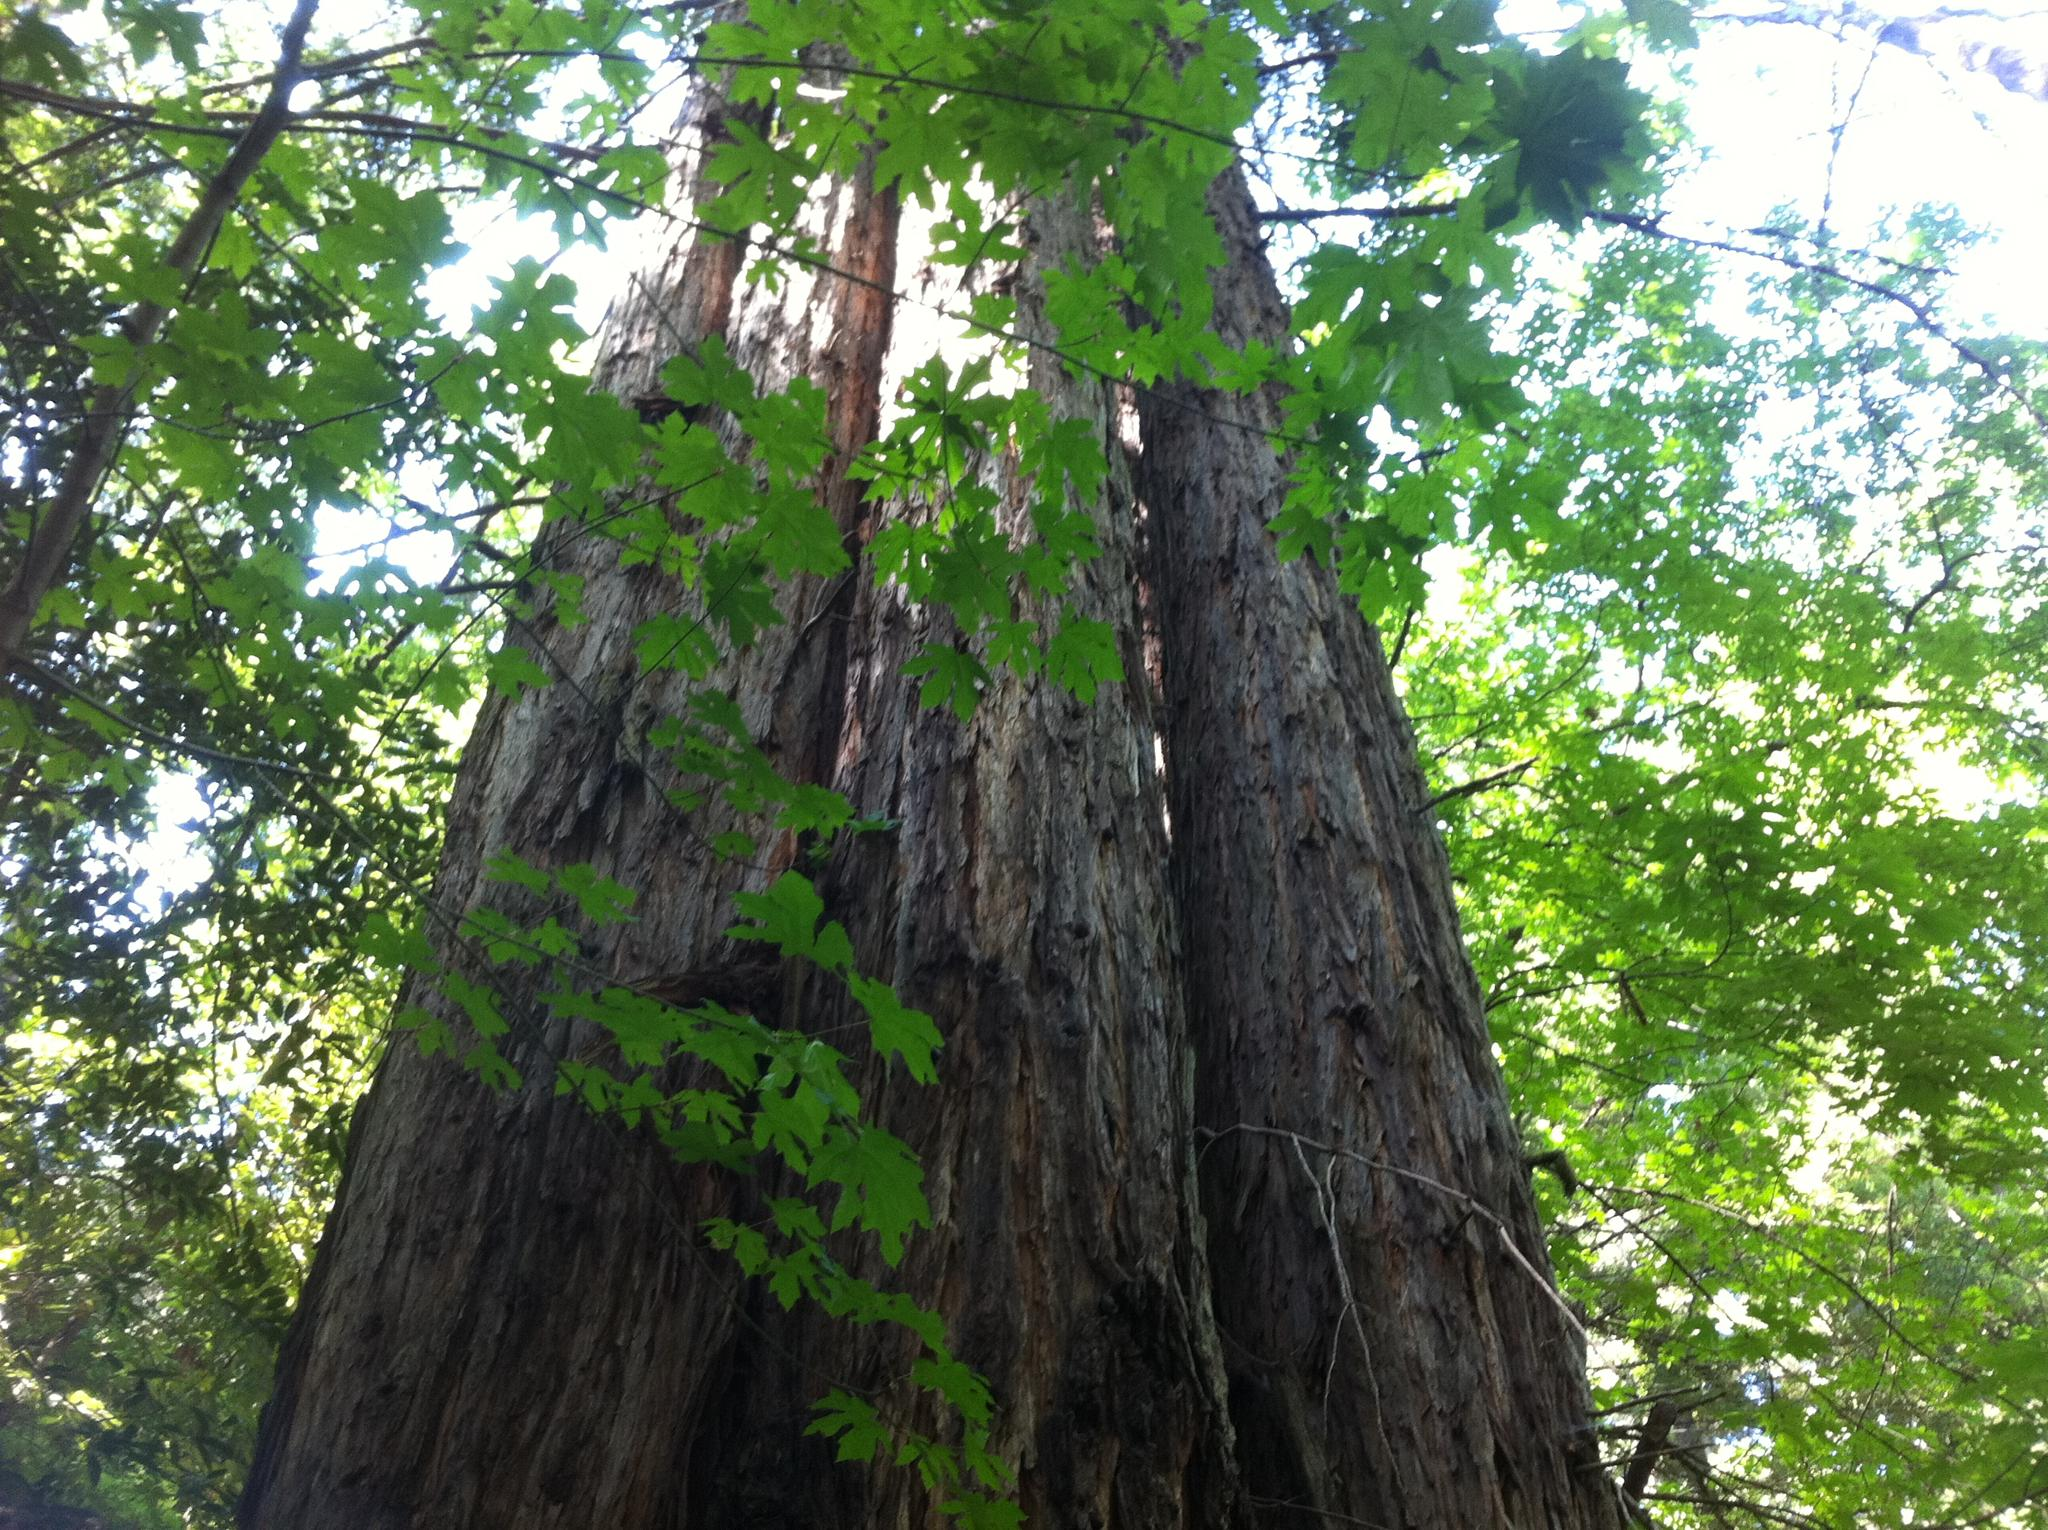 Redwoods by Tigerbythetail